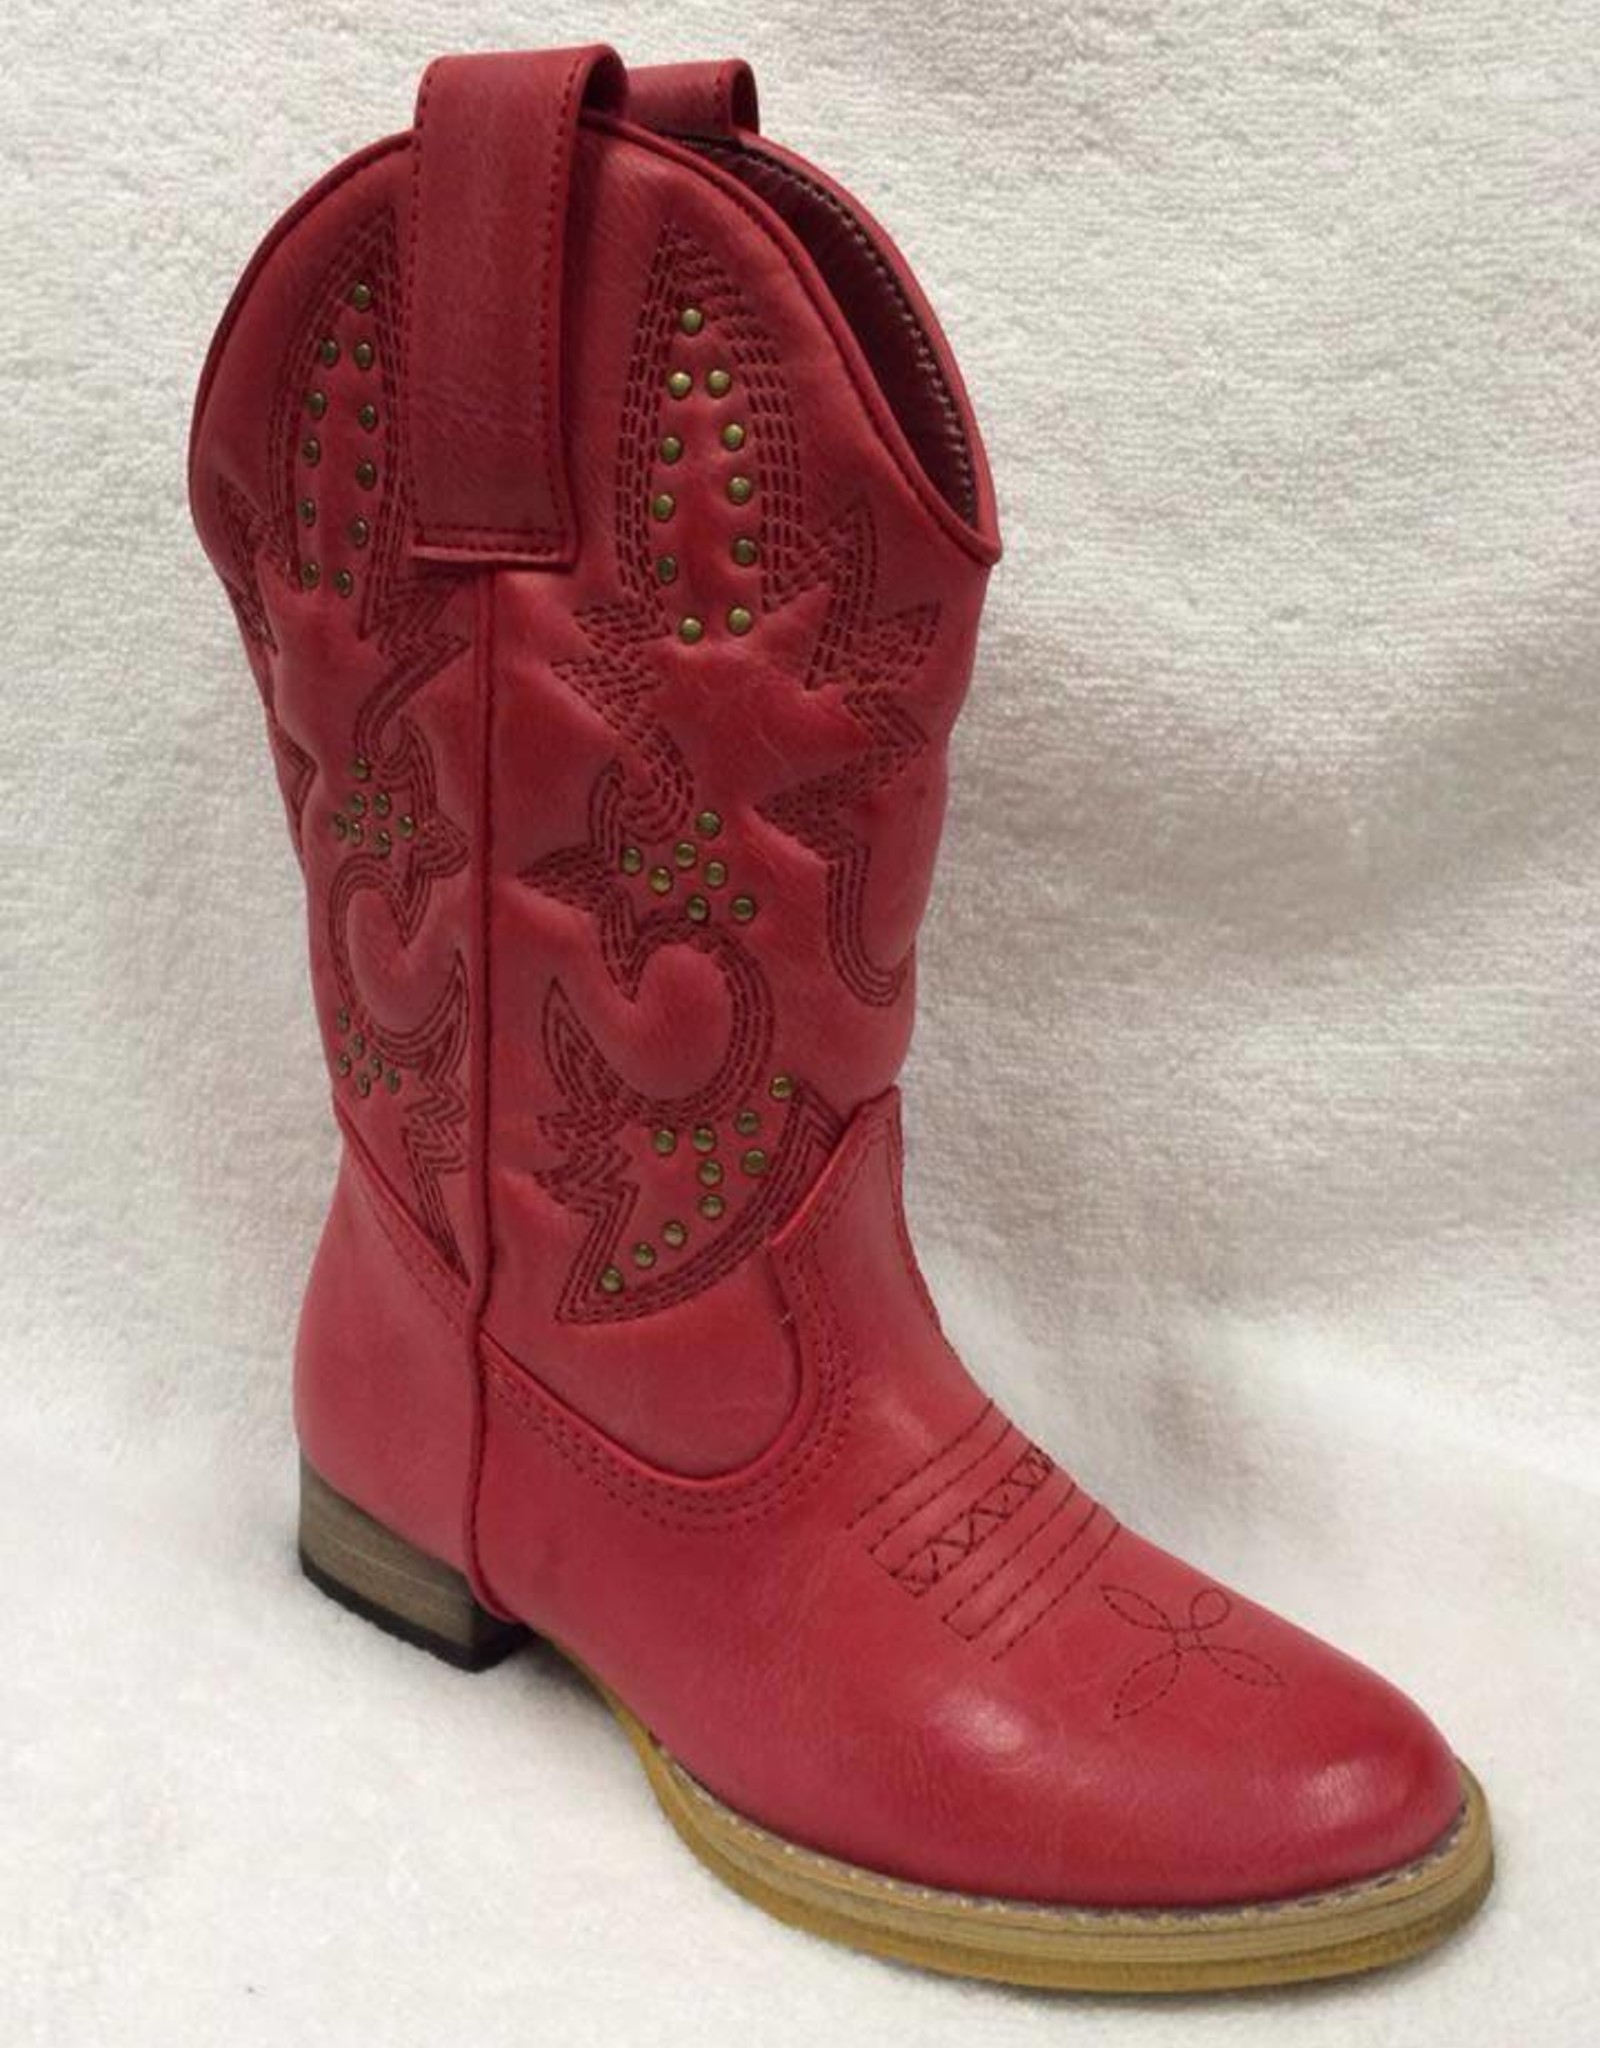 Volatile Grit Boots in Red